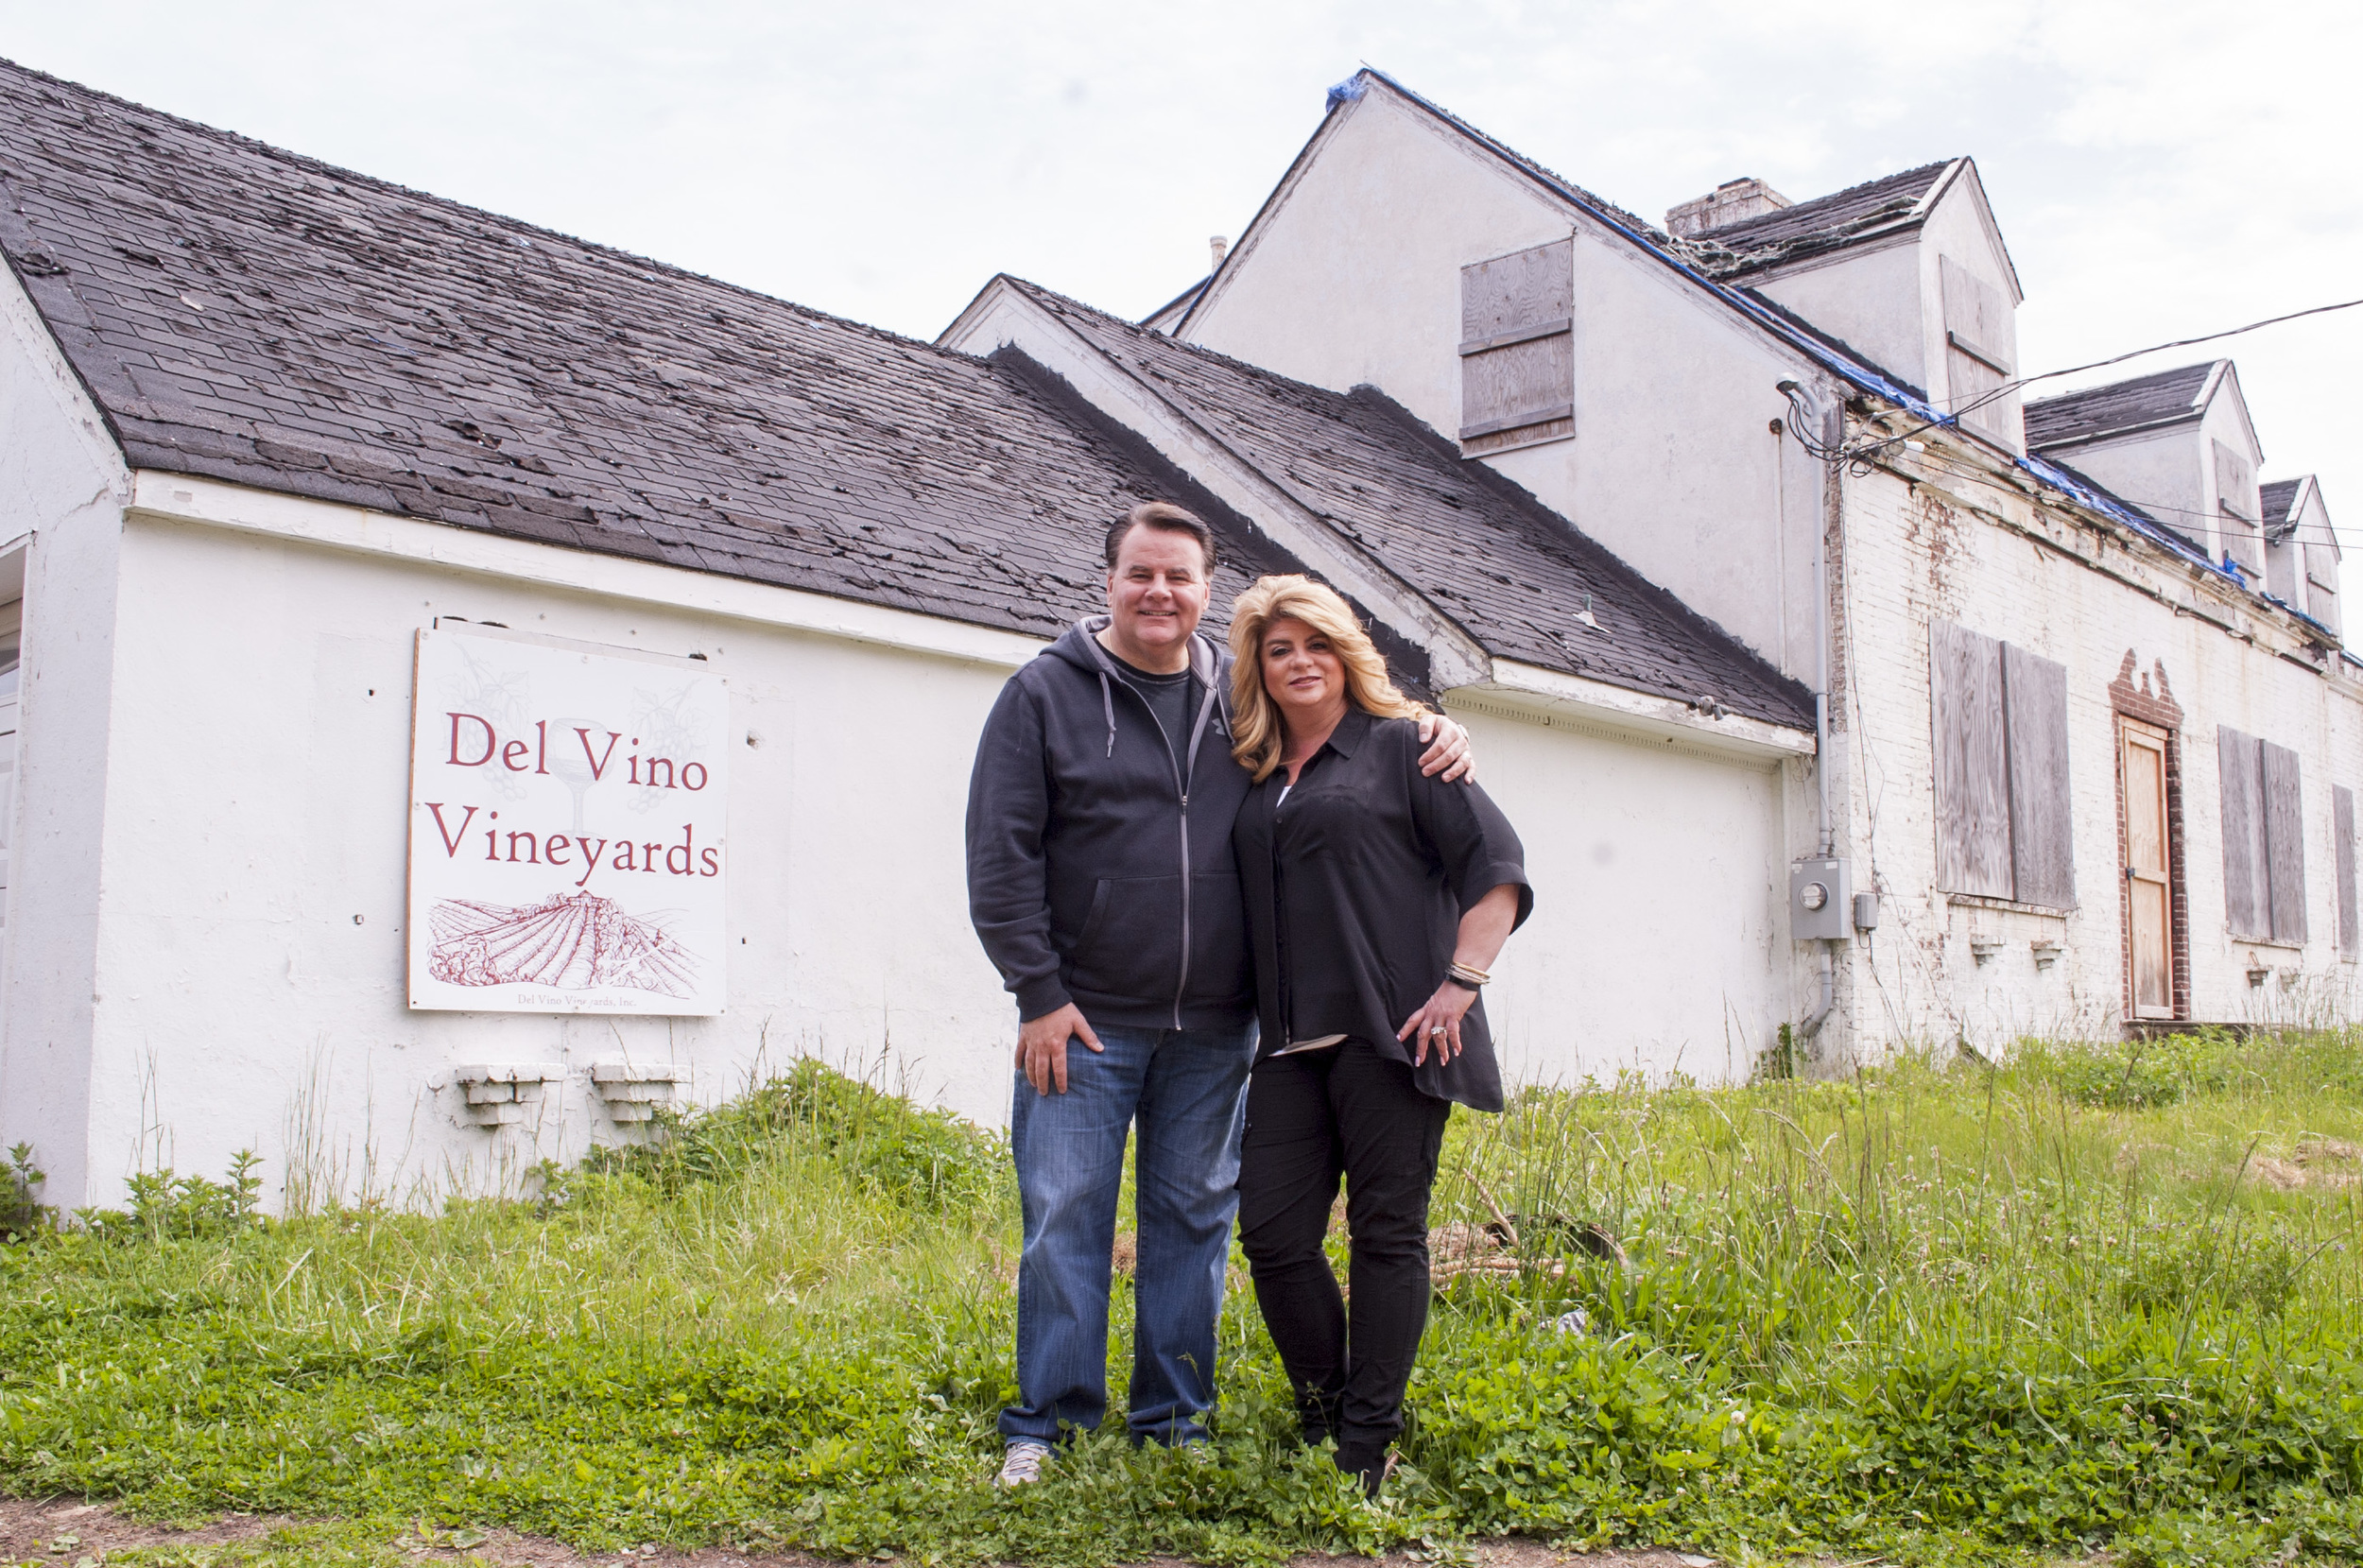 Huntington   officials unreasonably restricted Frank Giachetti, above, from moving forward with his proposal to build Del Vino Vineyard on his Norwood Road property in Northport, according to preliminary state findings. Above Giachetti and wife Lisa are pictured on the property.